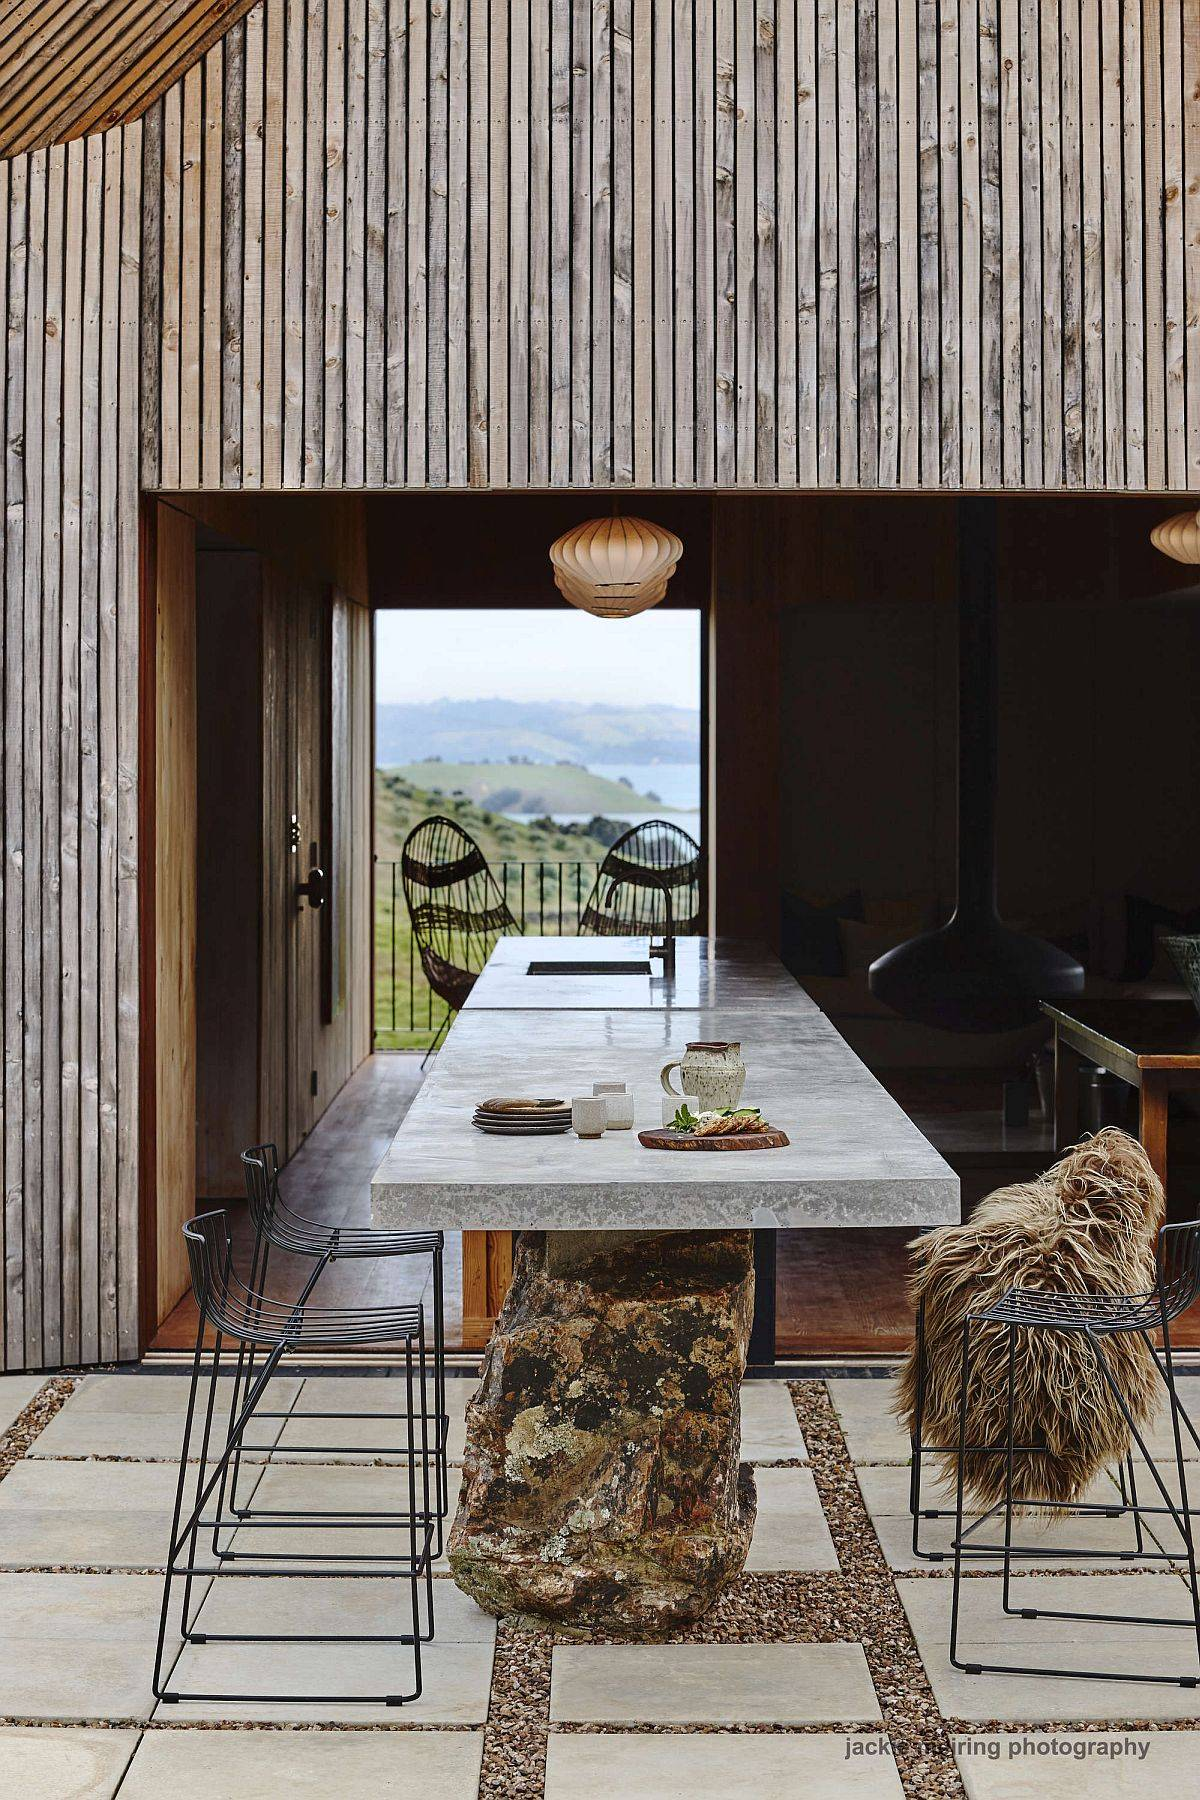 Kitchen-inside-the-house-extends-into-the-outdoor-sitting-and-eating-area-65440